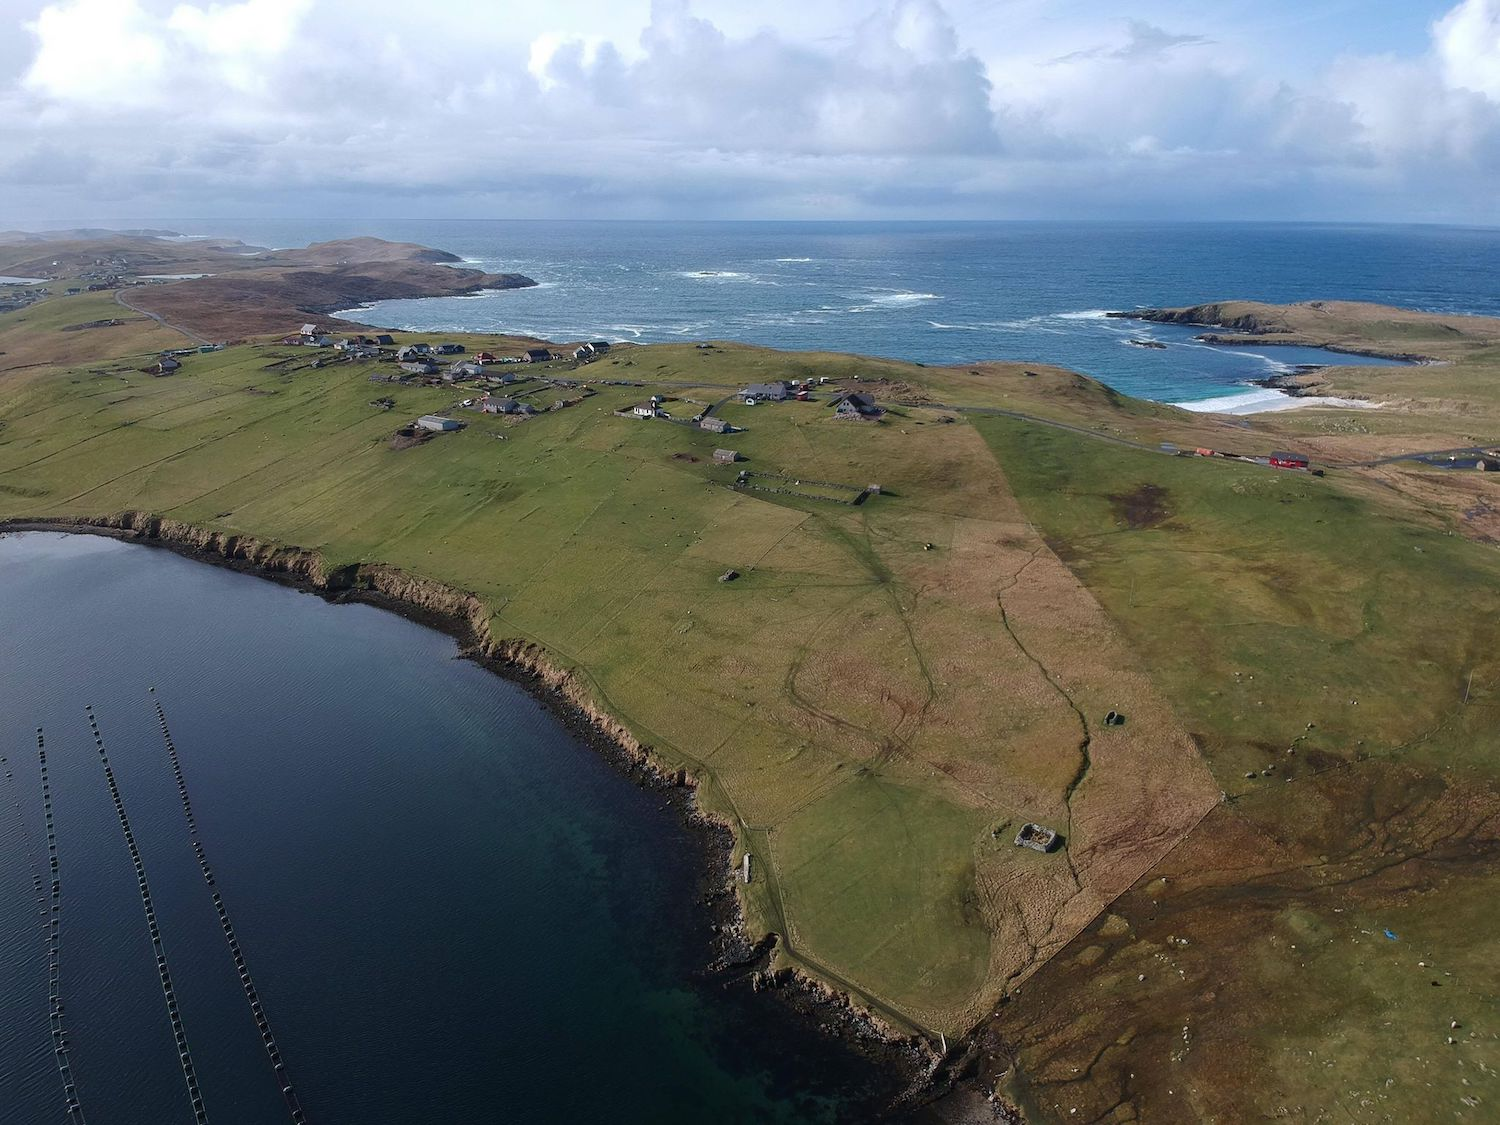 Our croft and neighbouring crofts. You can see the Meal Beach to the right hand side of the picture